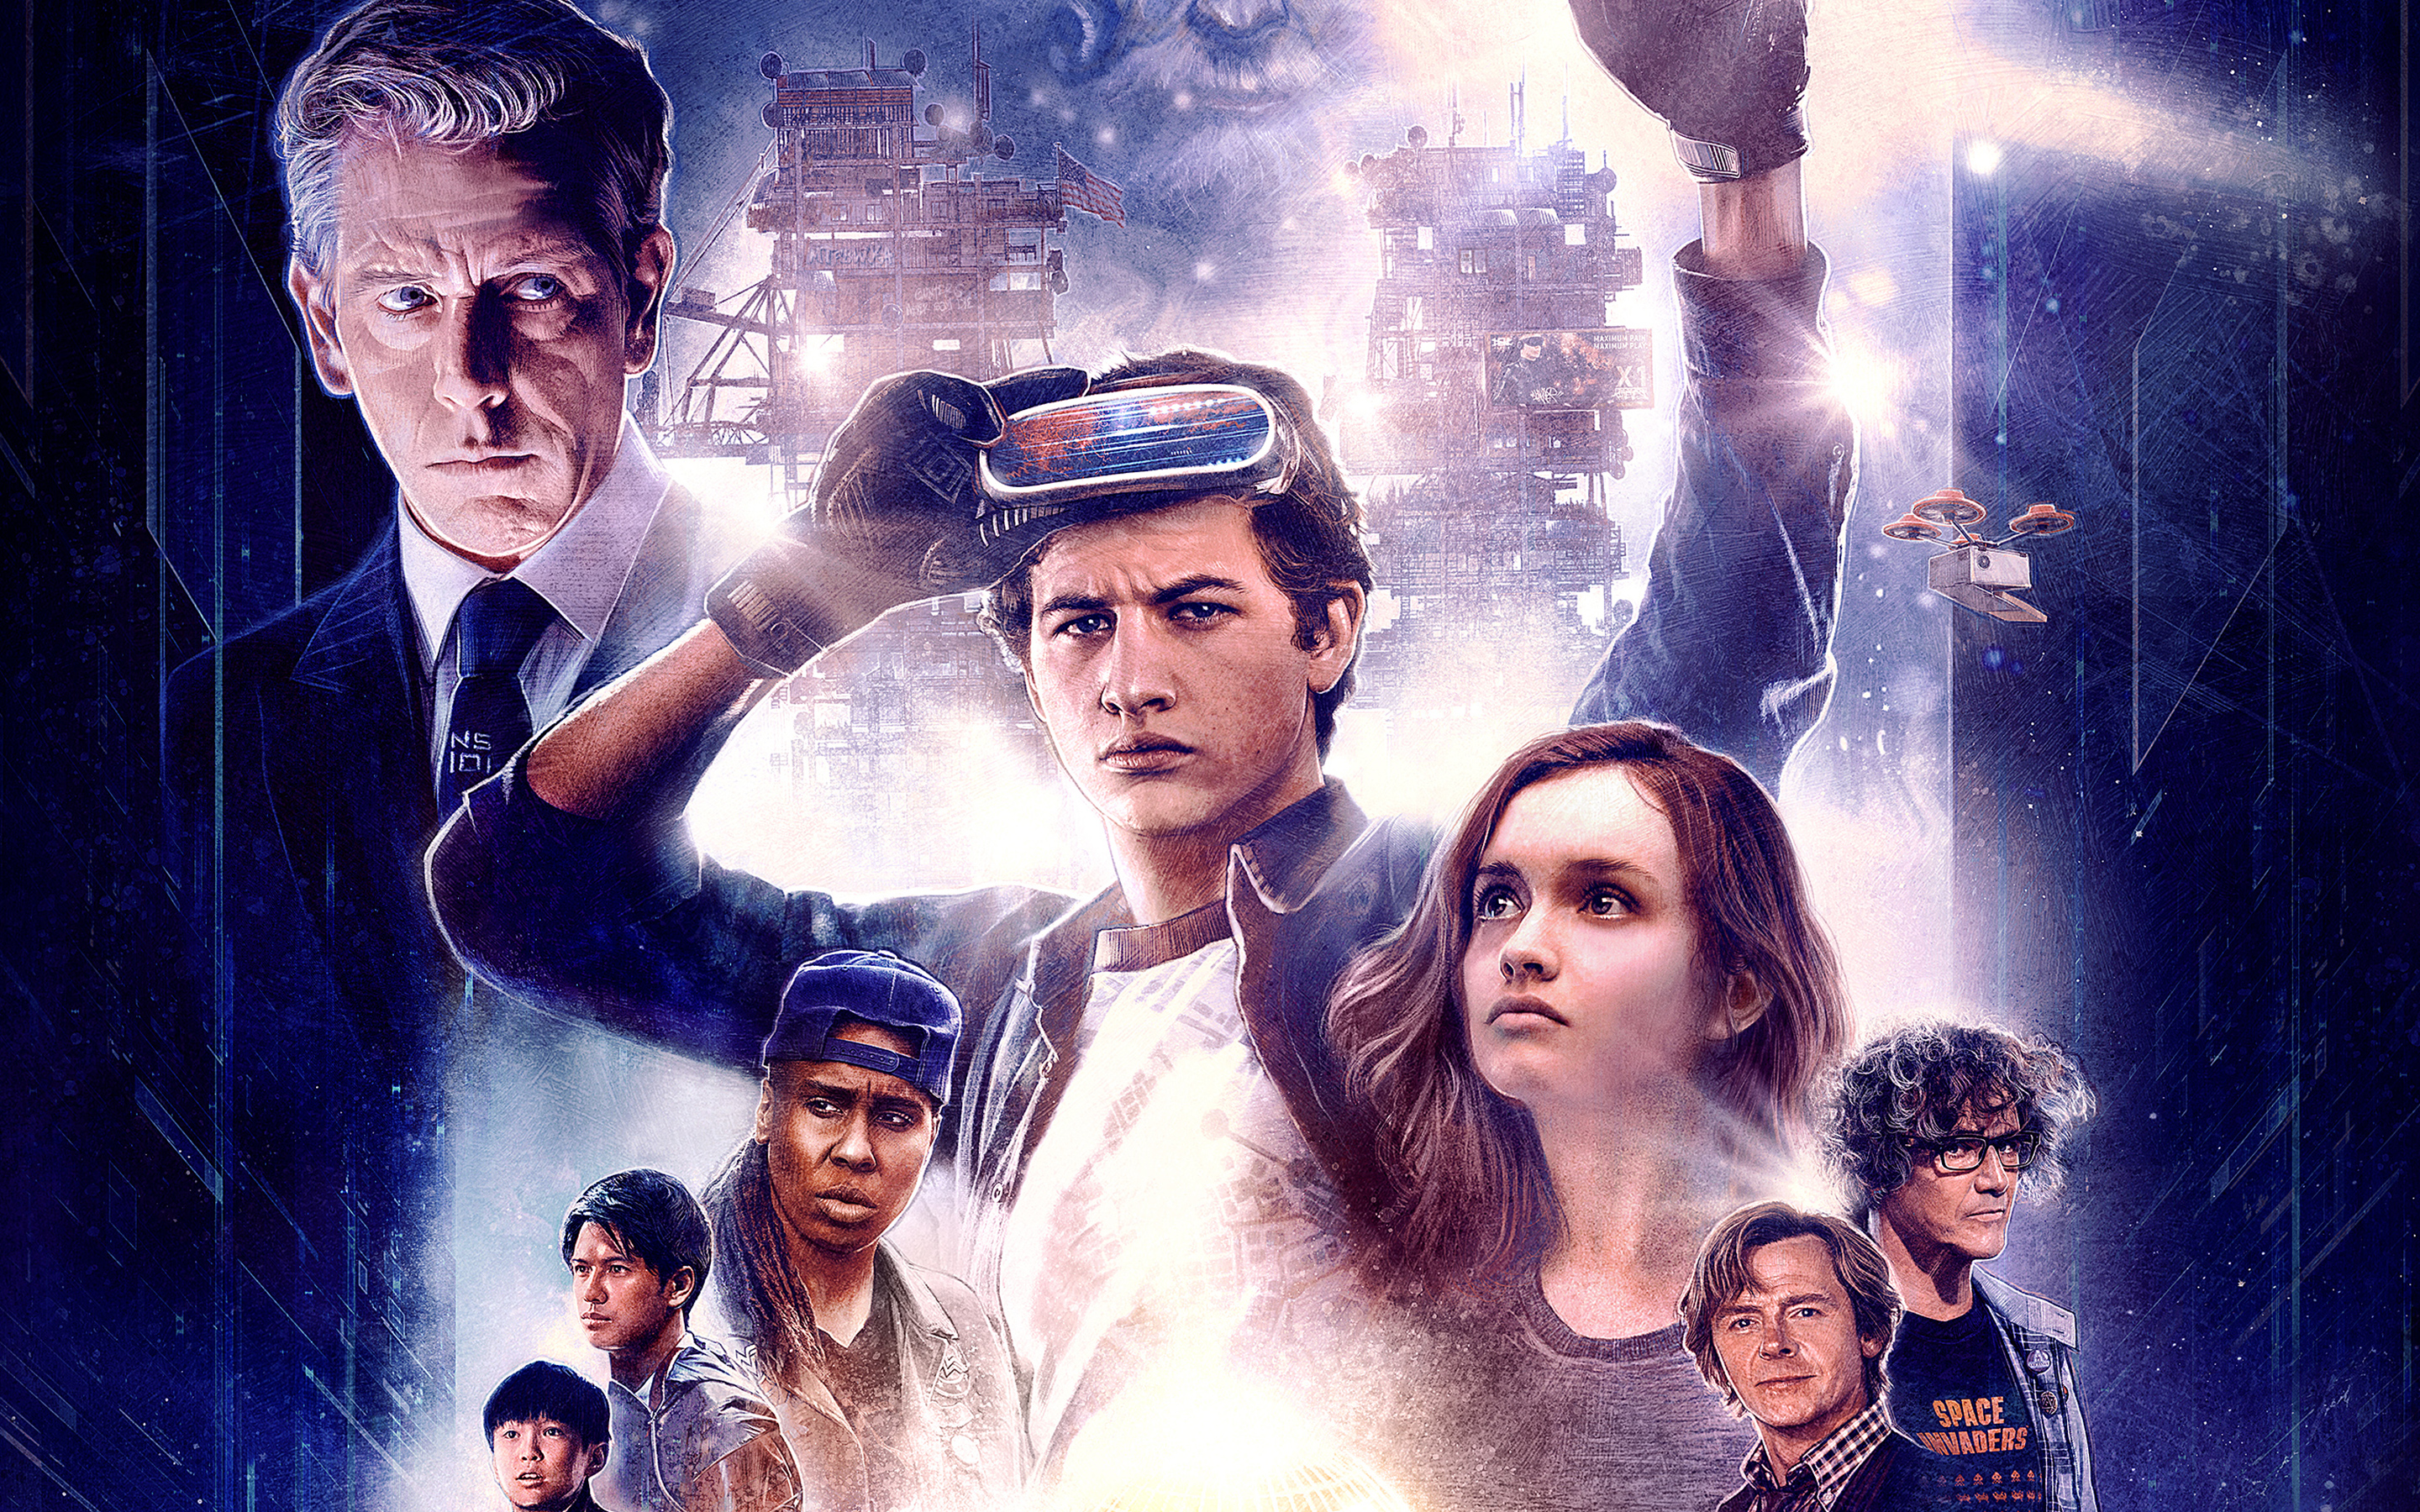 Ready Player One Artwork379065836 - Ready Player One Artwork - Ready, Rangasthalam, Player, One, Artwork